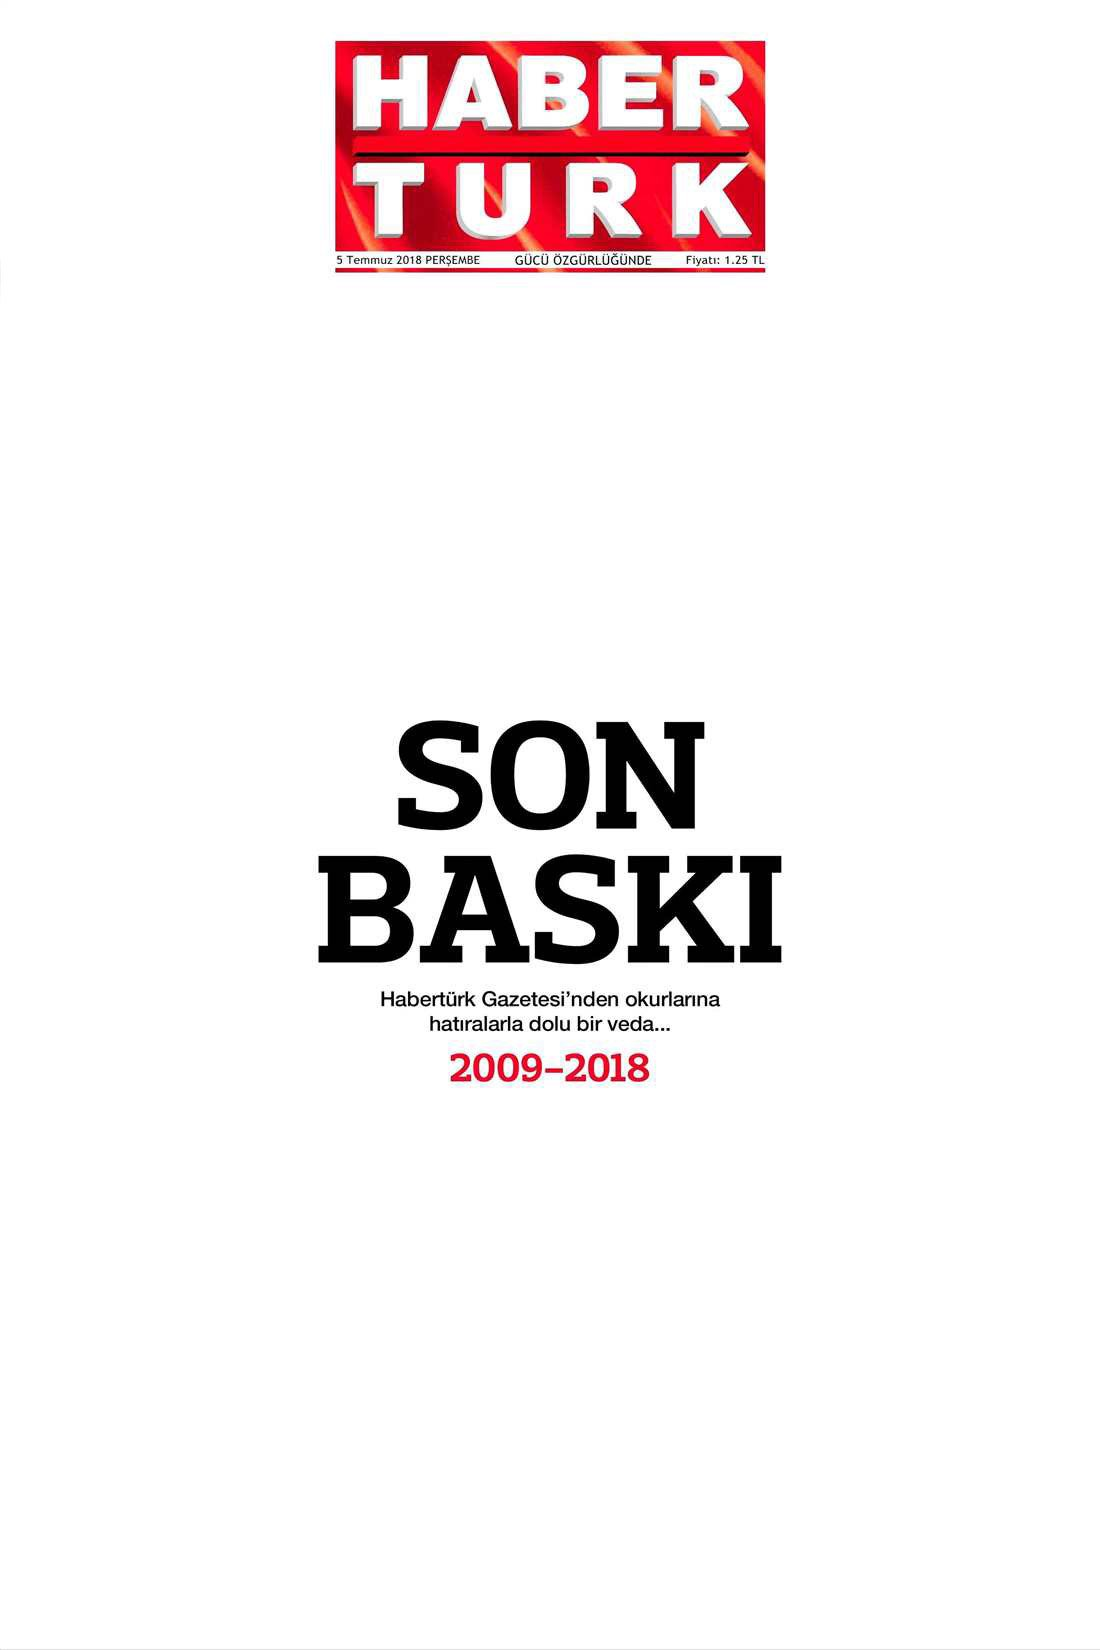 haberturk-son-baski